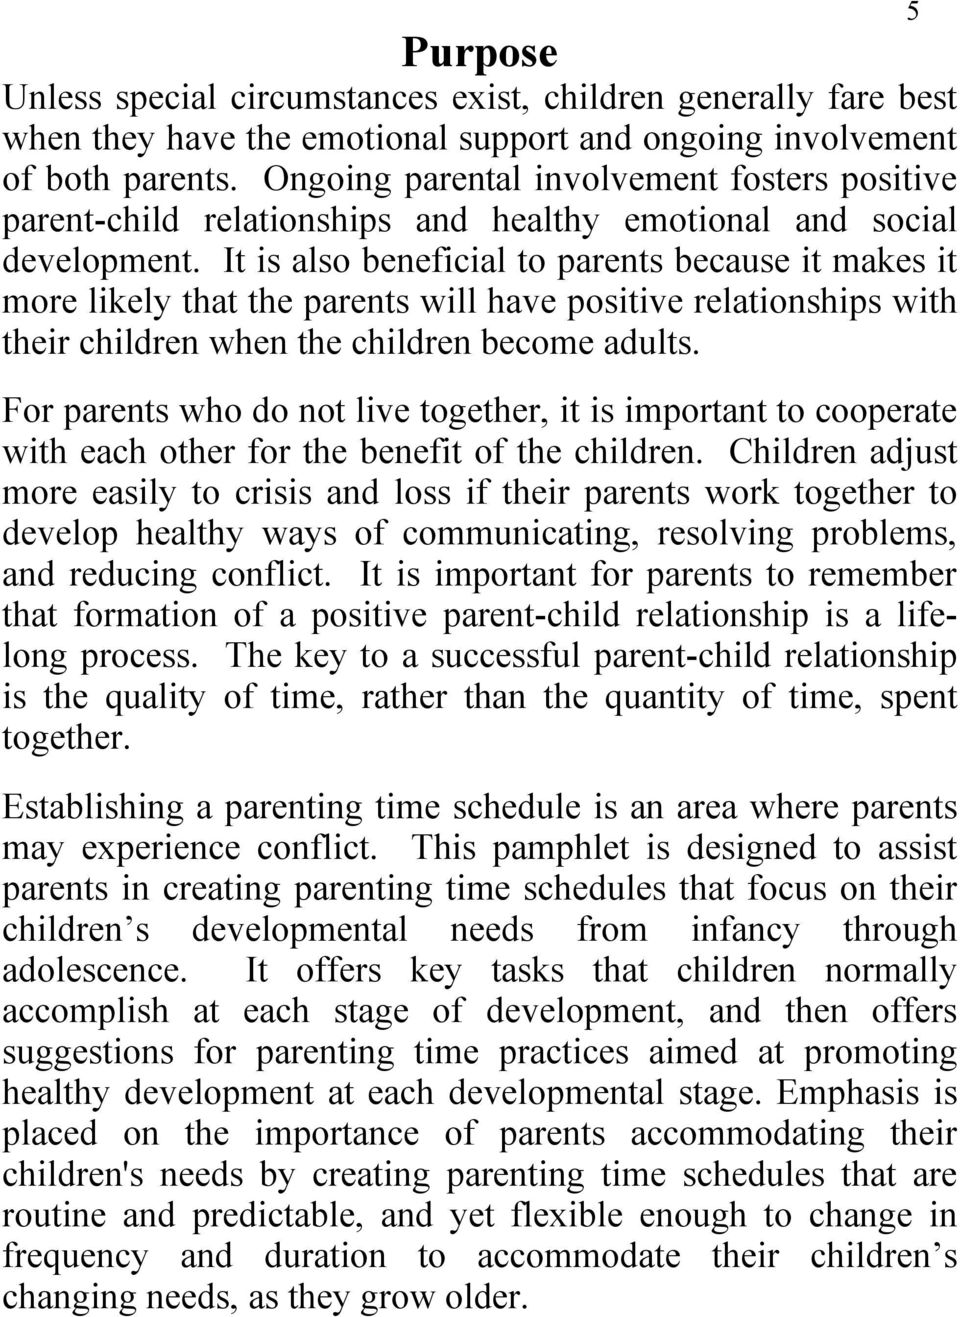 It is also beneficial to parents because it makes it more likely that the parents will have positive relationships with their children when the children become adults.